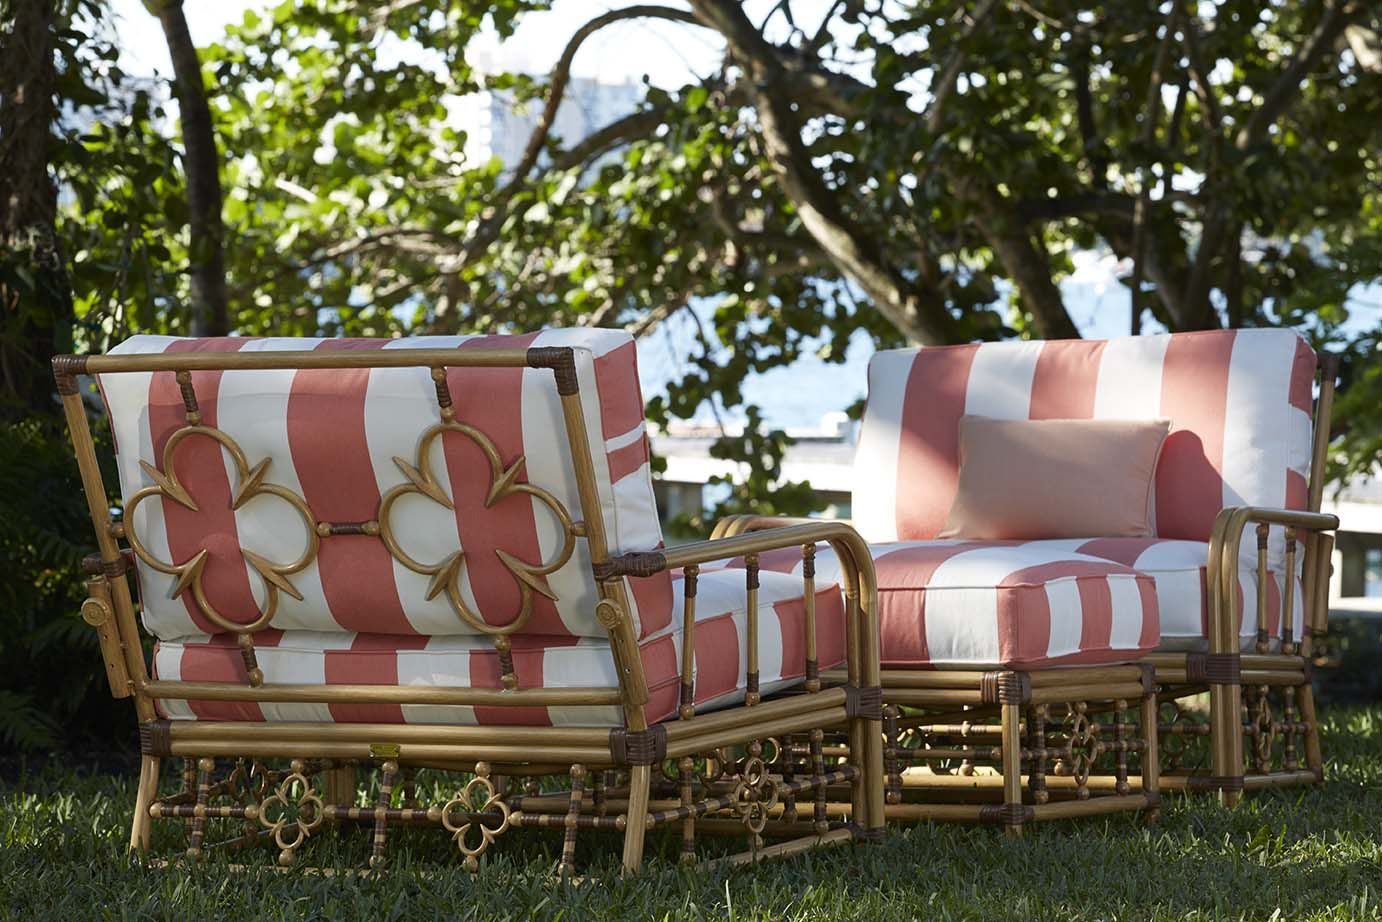 Celerie Kemble Shares Her Stunning New Outdoor Furniture Collection For Lane Venture Outdoor Furniture Collections Outdoor Furniture Painting Wooden Furniture